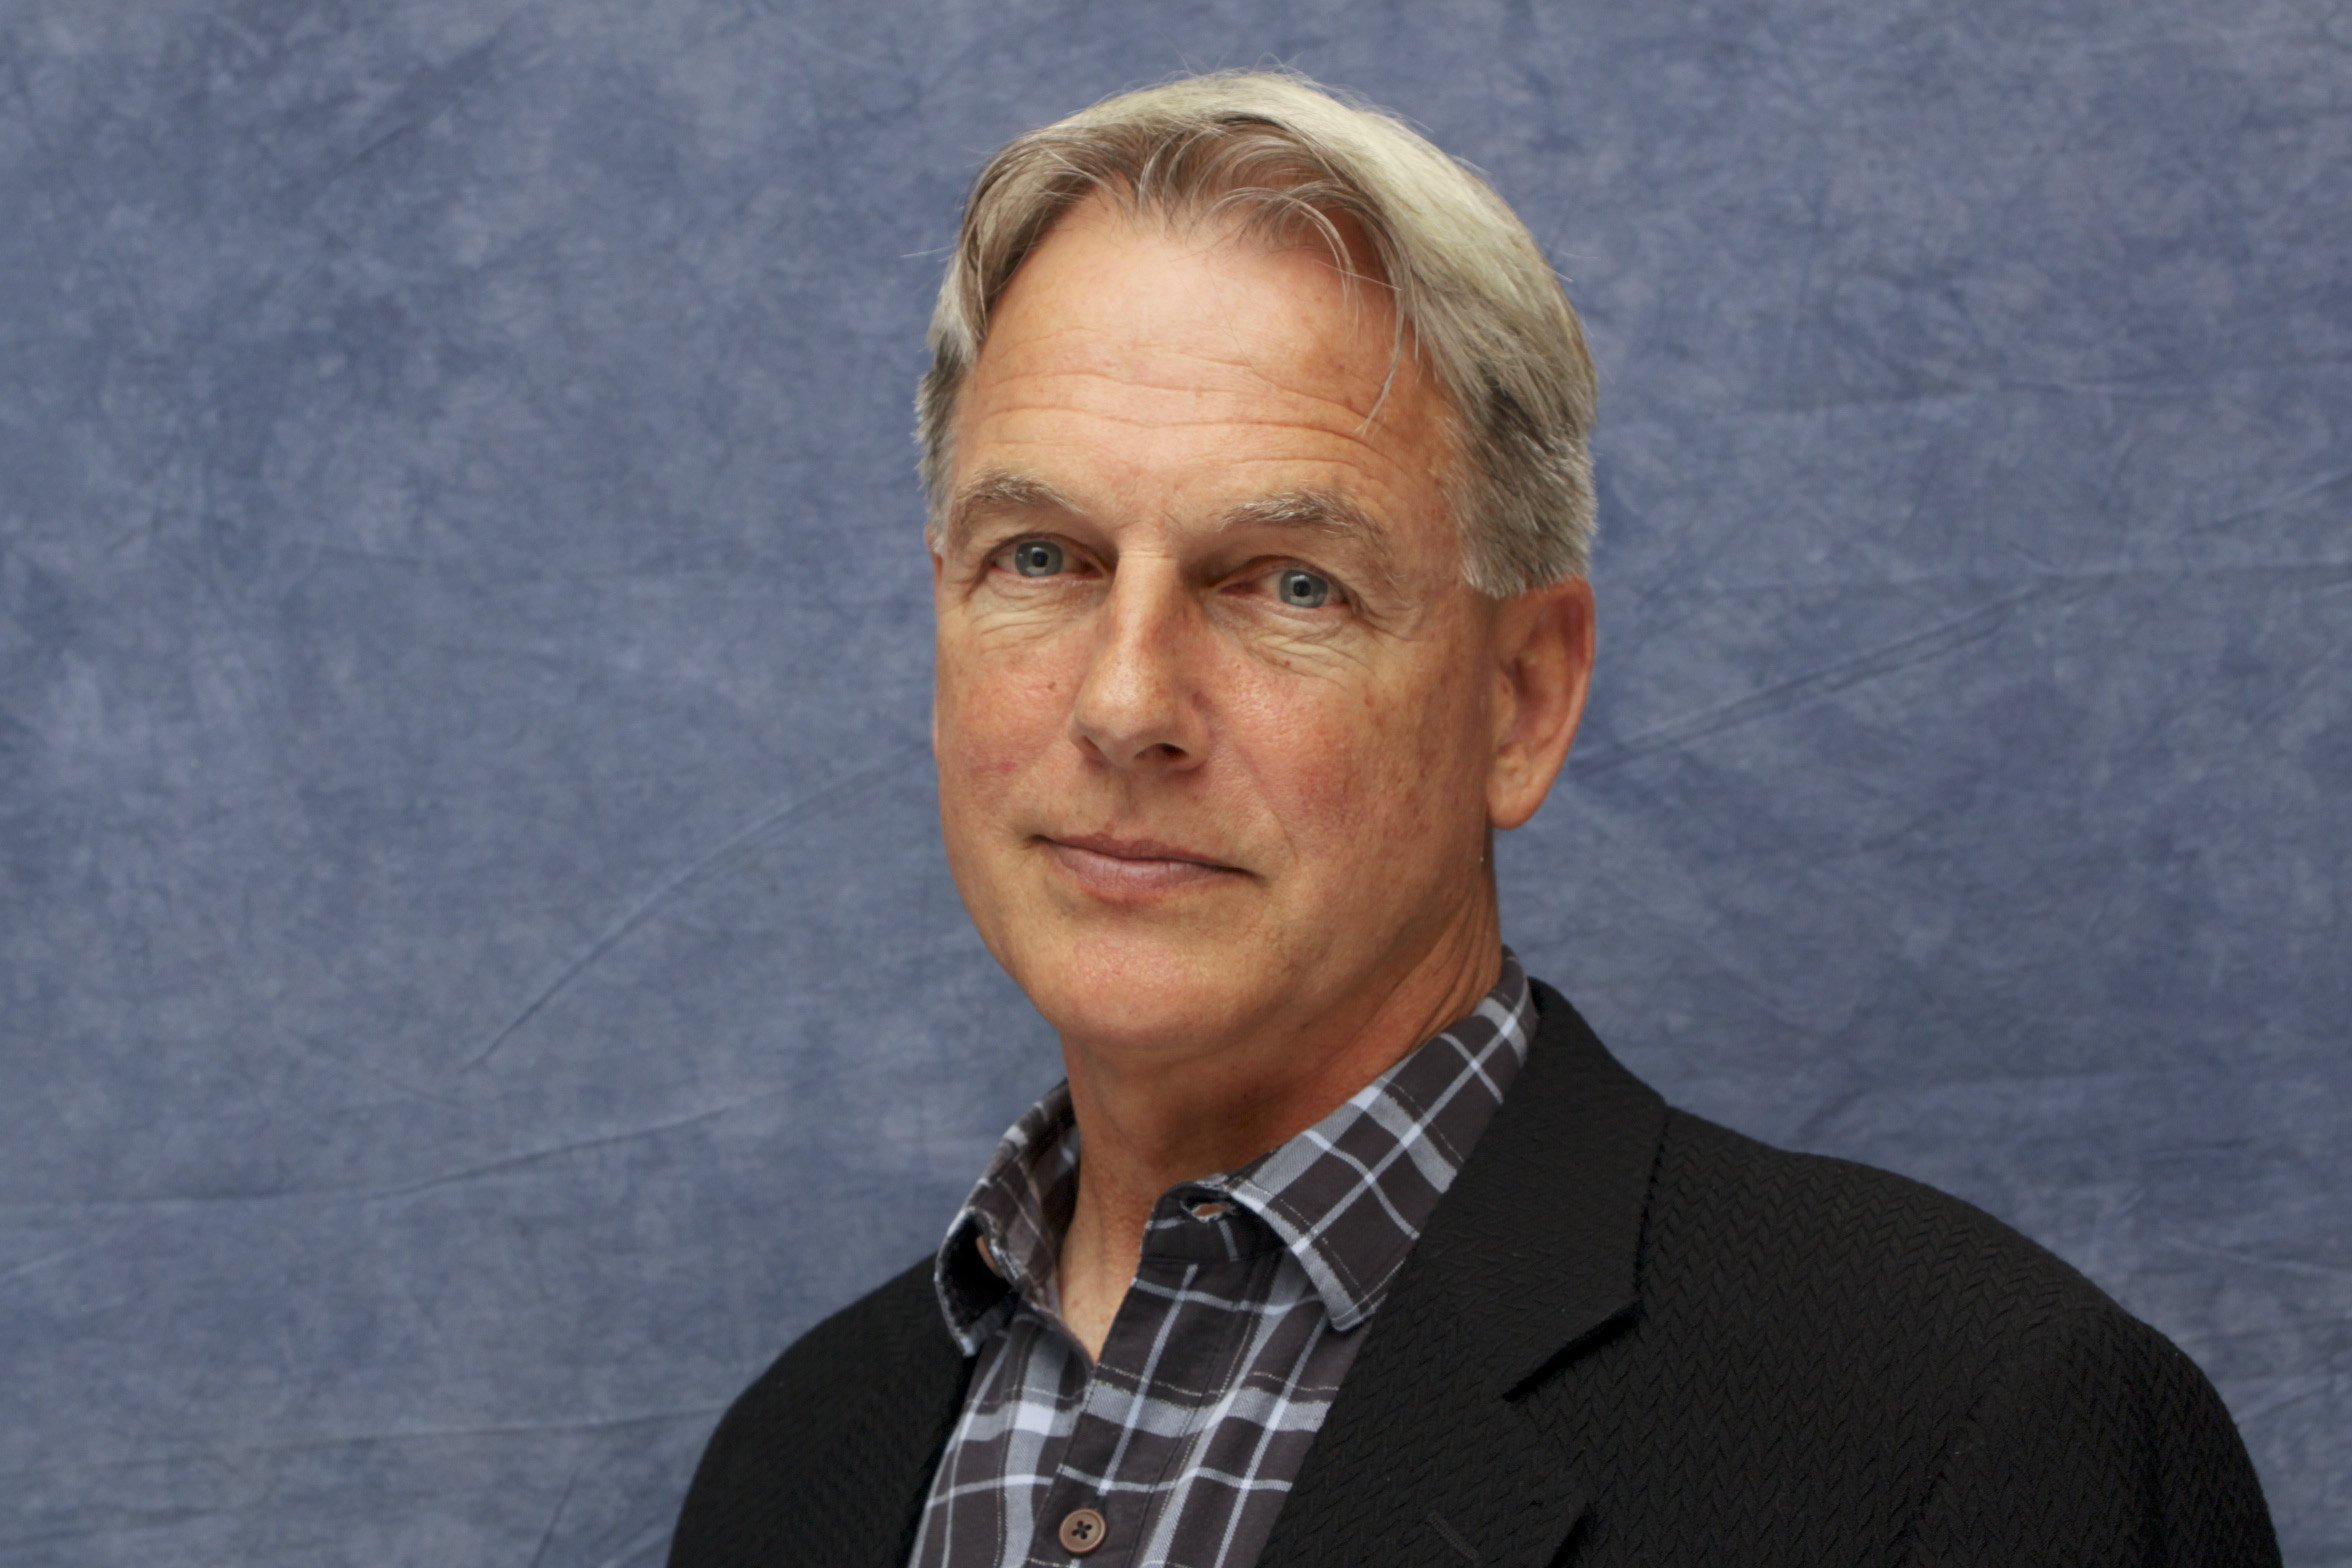 Mark Harmon im Four Seasons Hotel in Beverly Hills, Kalifornien am 22. April, 2009. | Quelle: Getty Images